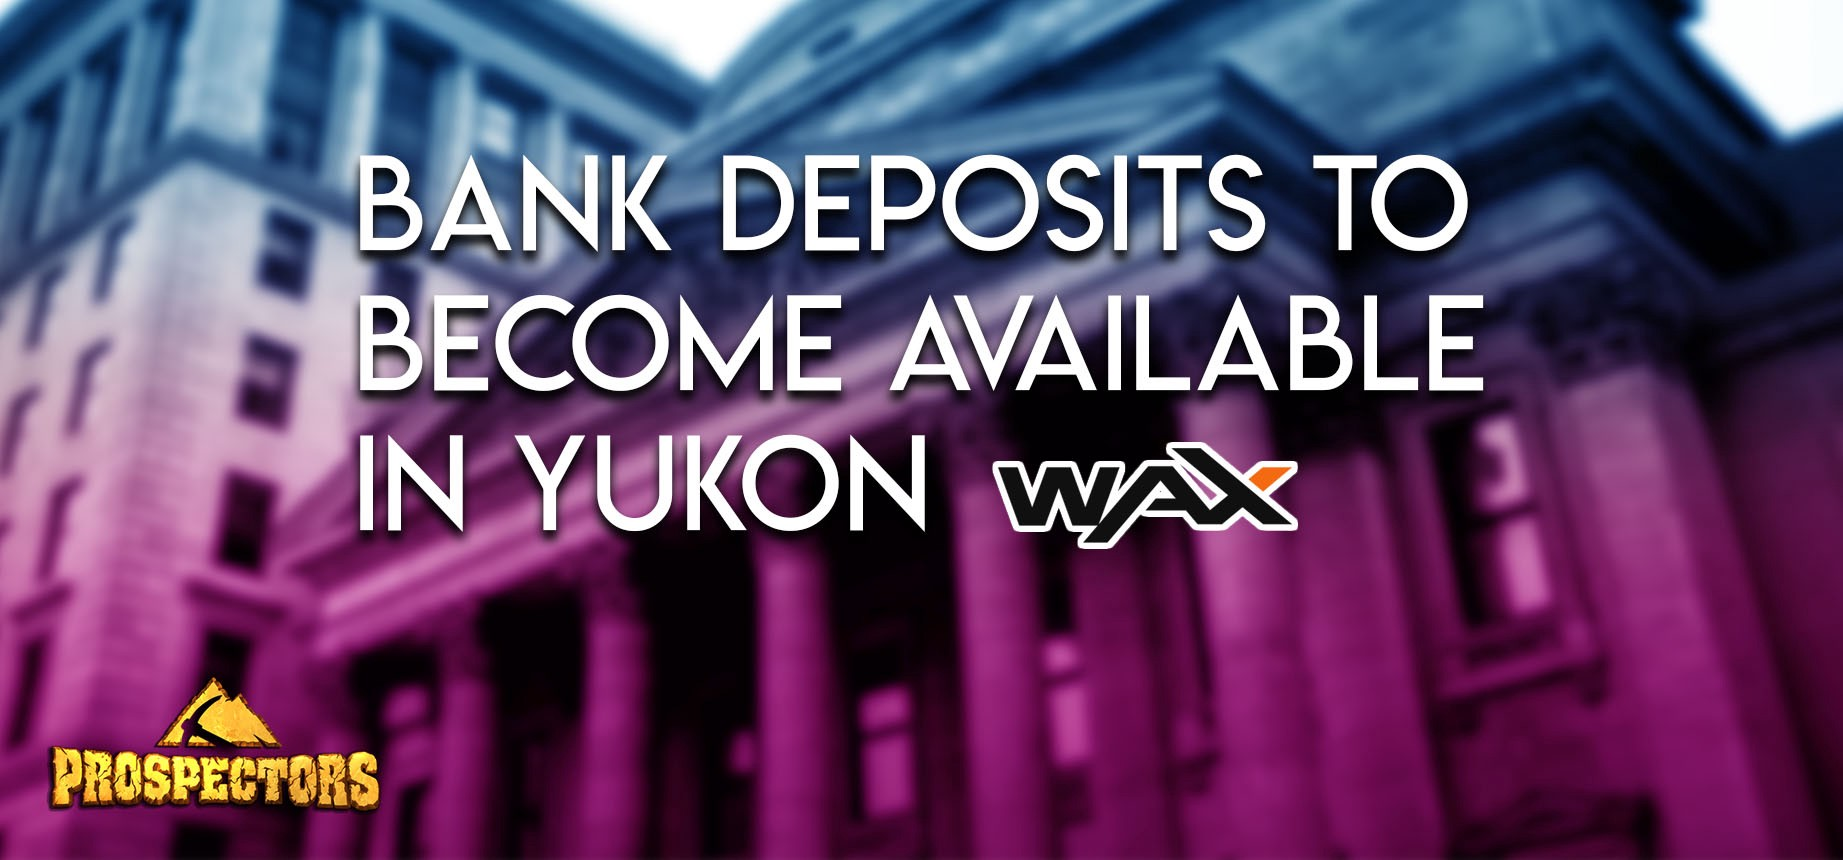 Bank Deposits to Become Available in Yukon